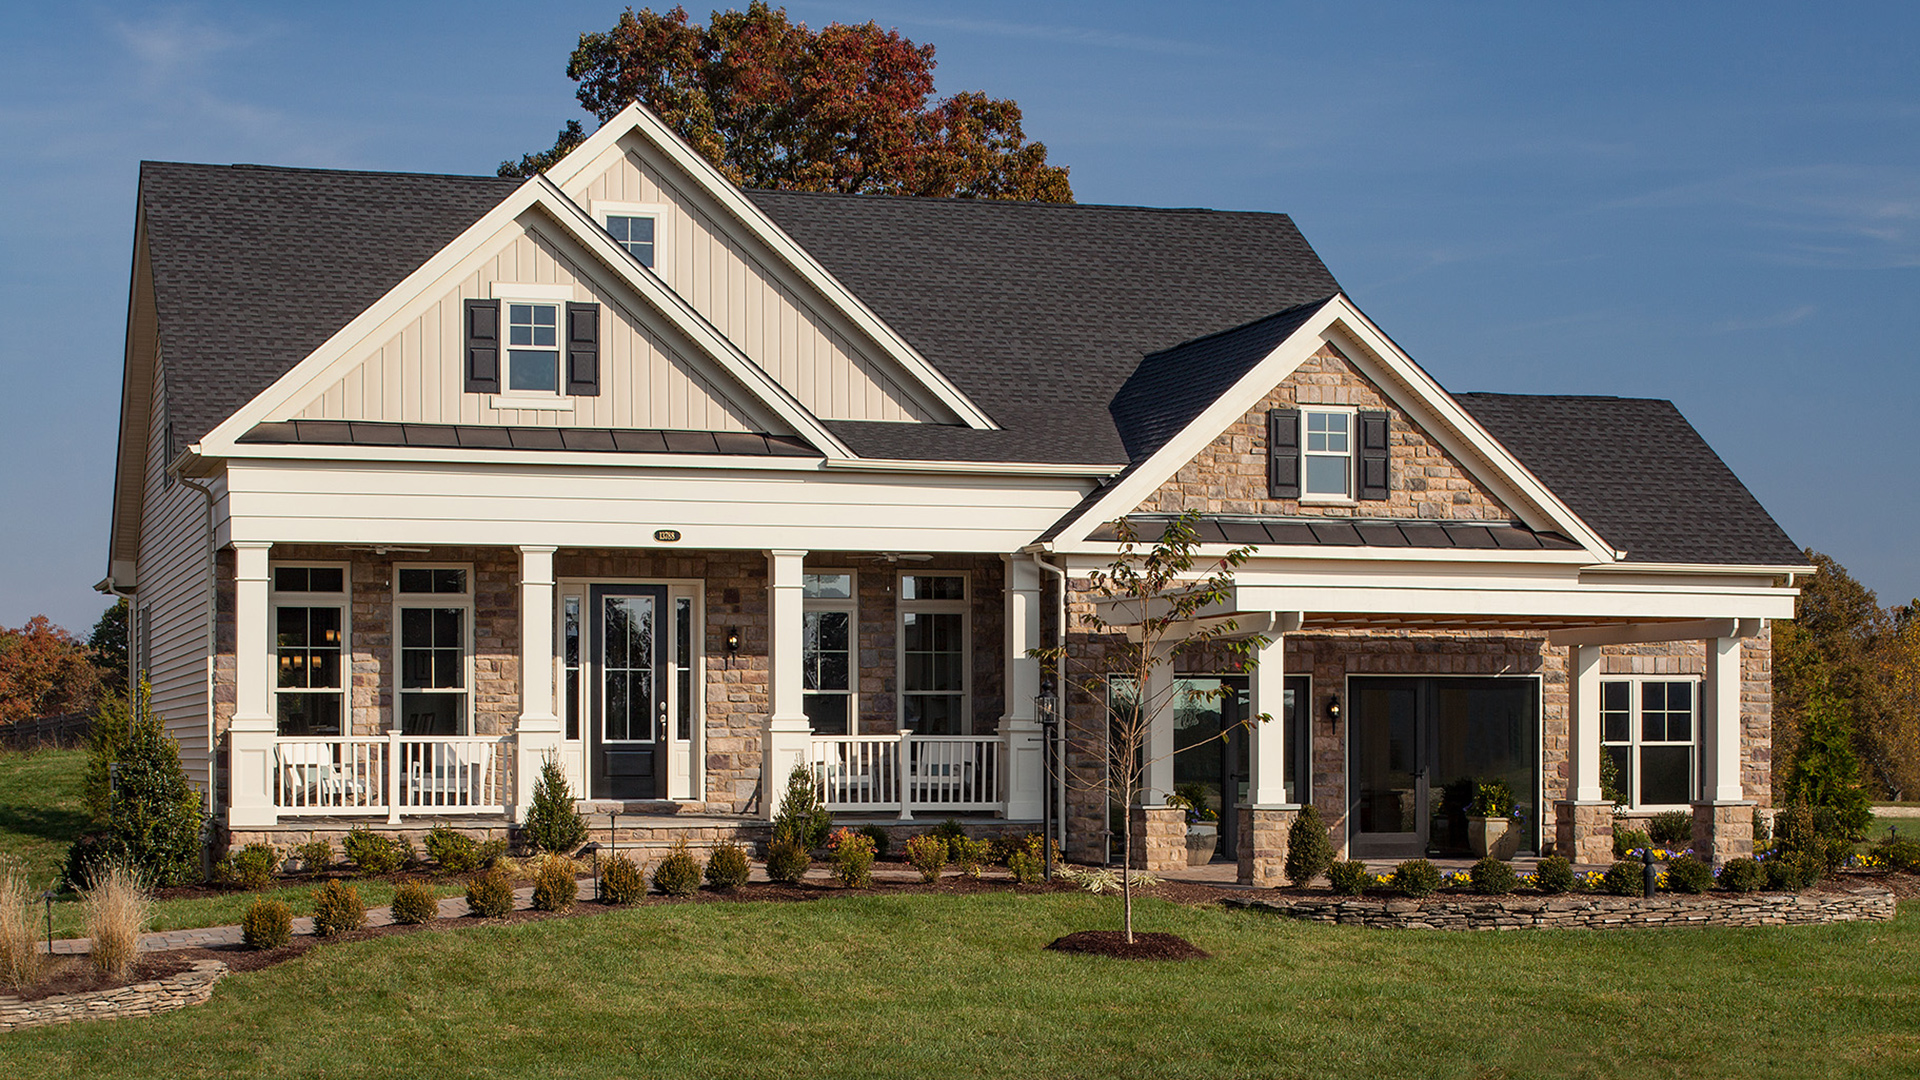 Regency at Creekside - The Middleburg Collection Quick ... on